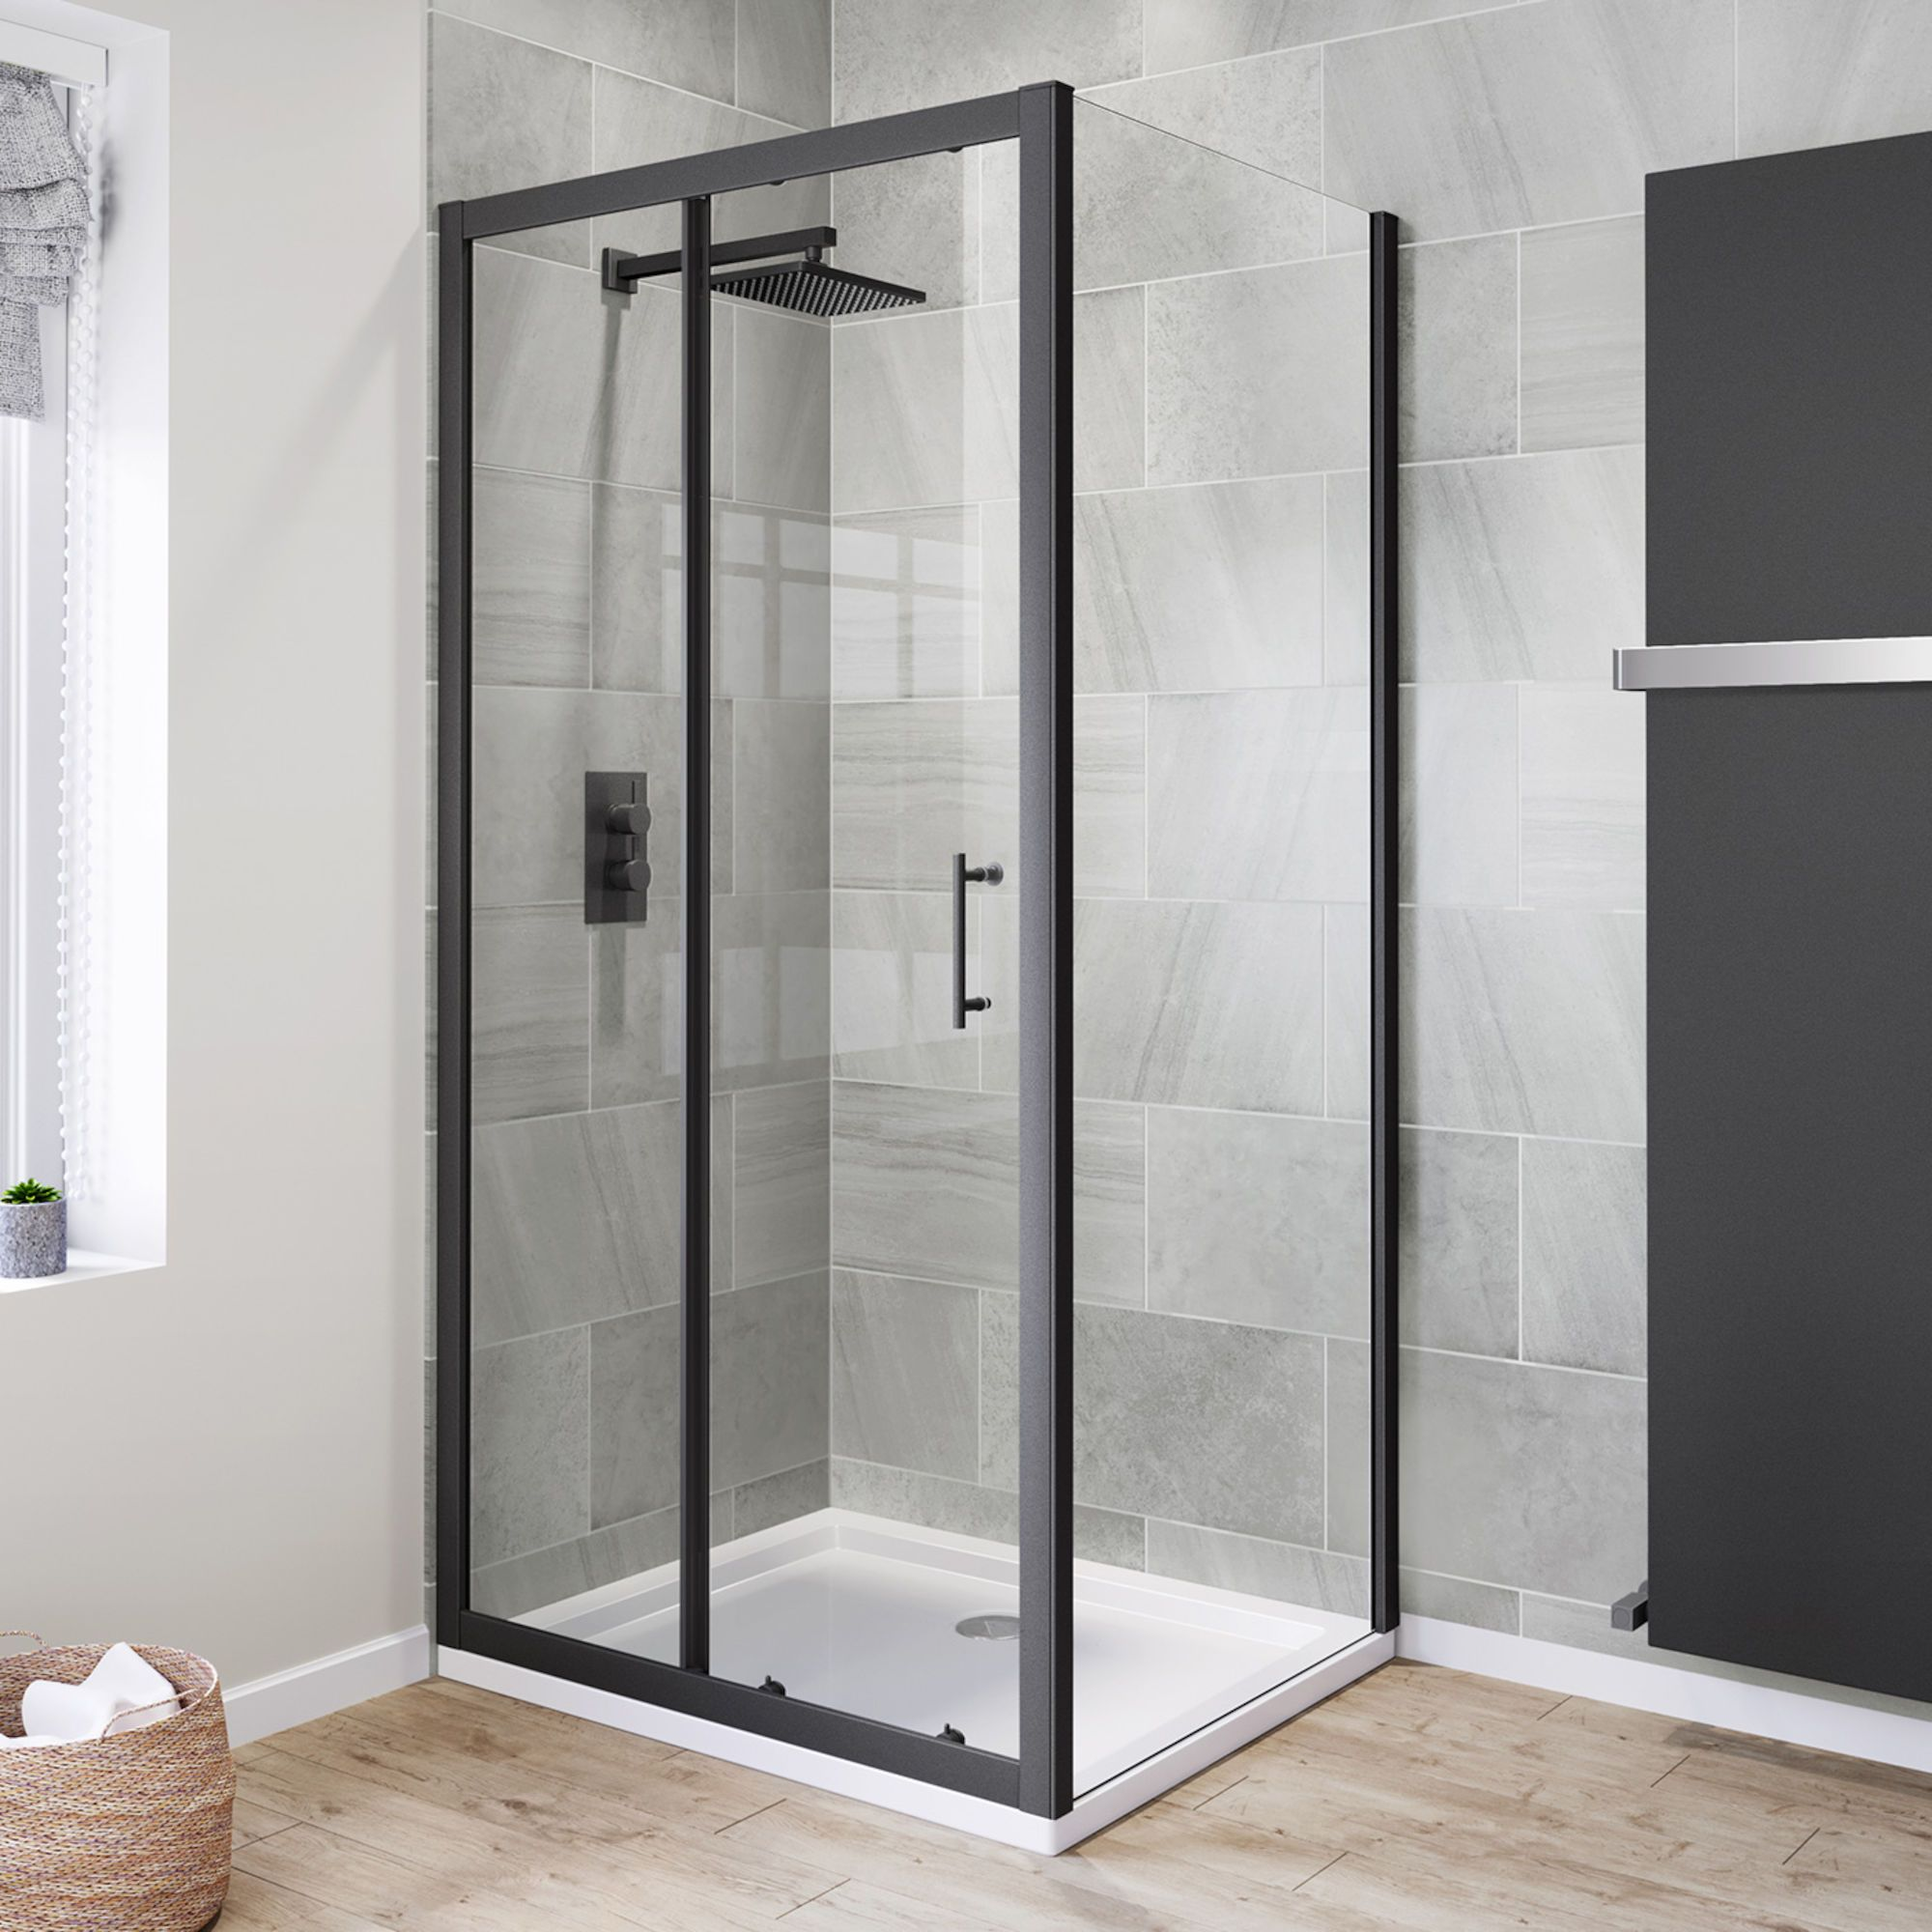 Https Soak Com En Gb Shower Enclosures Black Enclosures 1000x800mm 6mm Black Frame Sliding Sho Frameless Shower Doors Shower Doors Framed Shower Enclosures